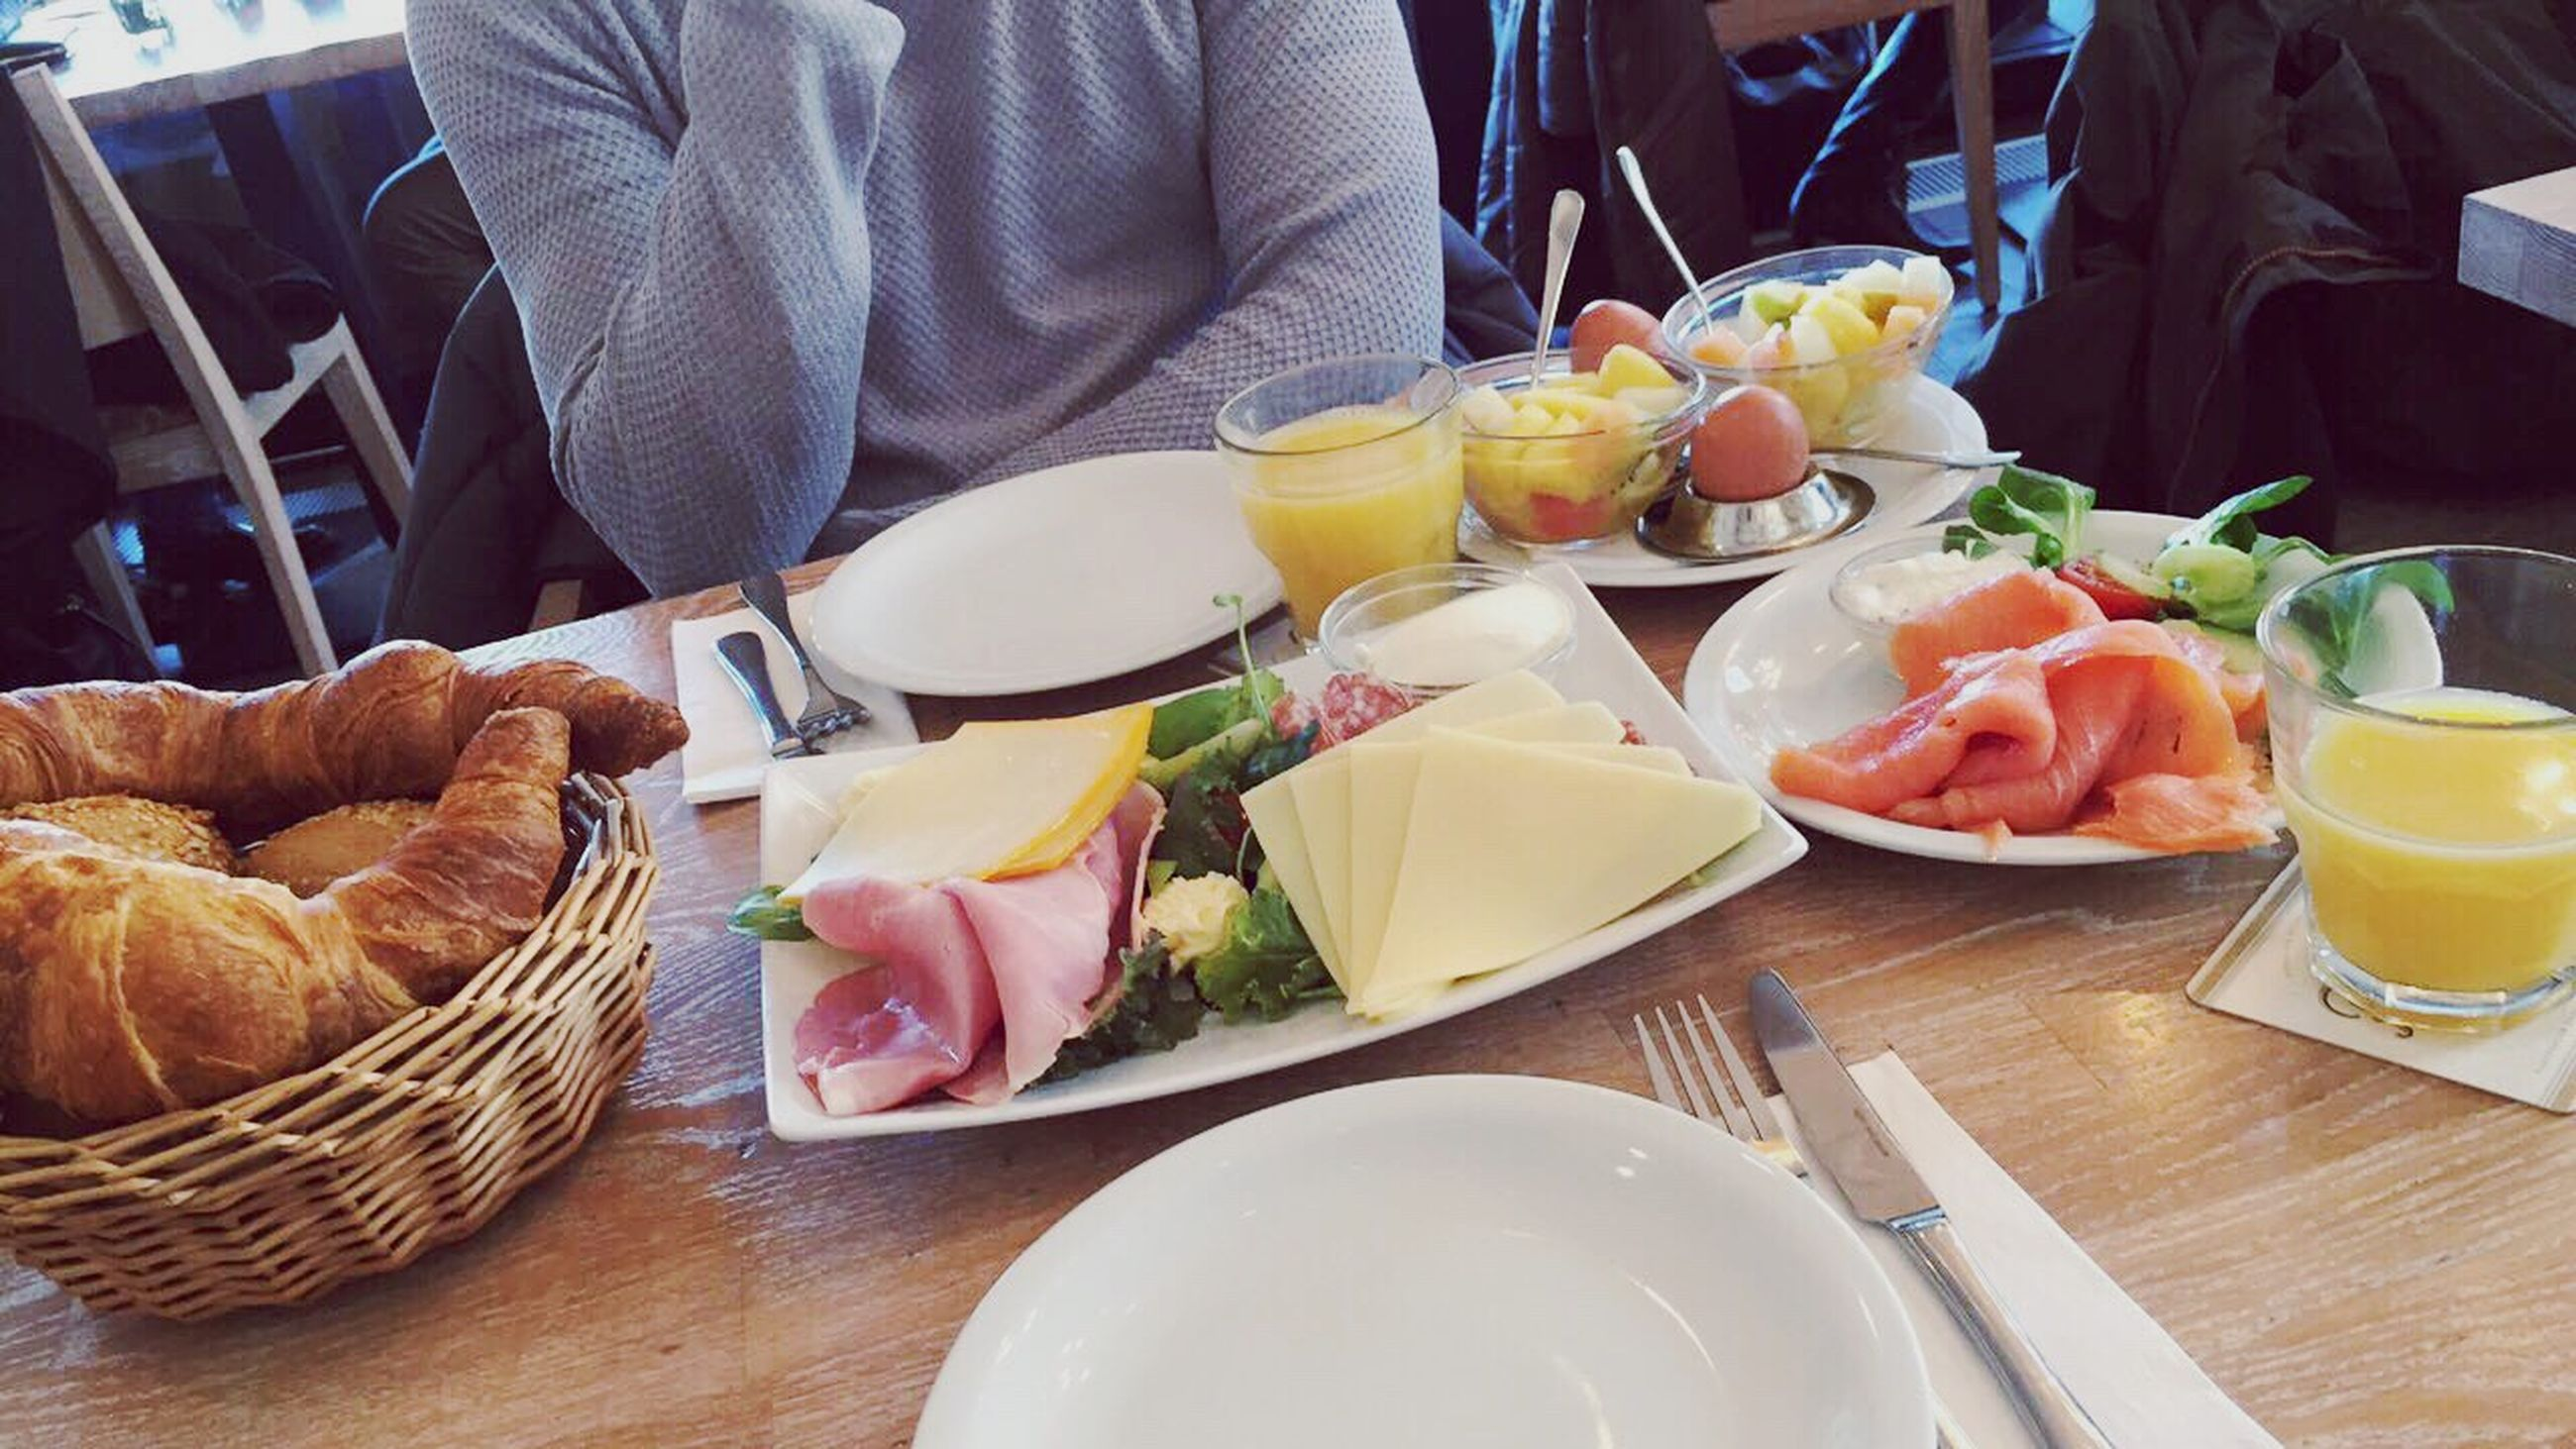 table, breakfast, food and drink, plate, food, women, midsection, meal, drink, adult, freshness, adults only, people, one person, ham, ready-to-eat, human hand, indoors, human body part, day